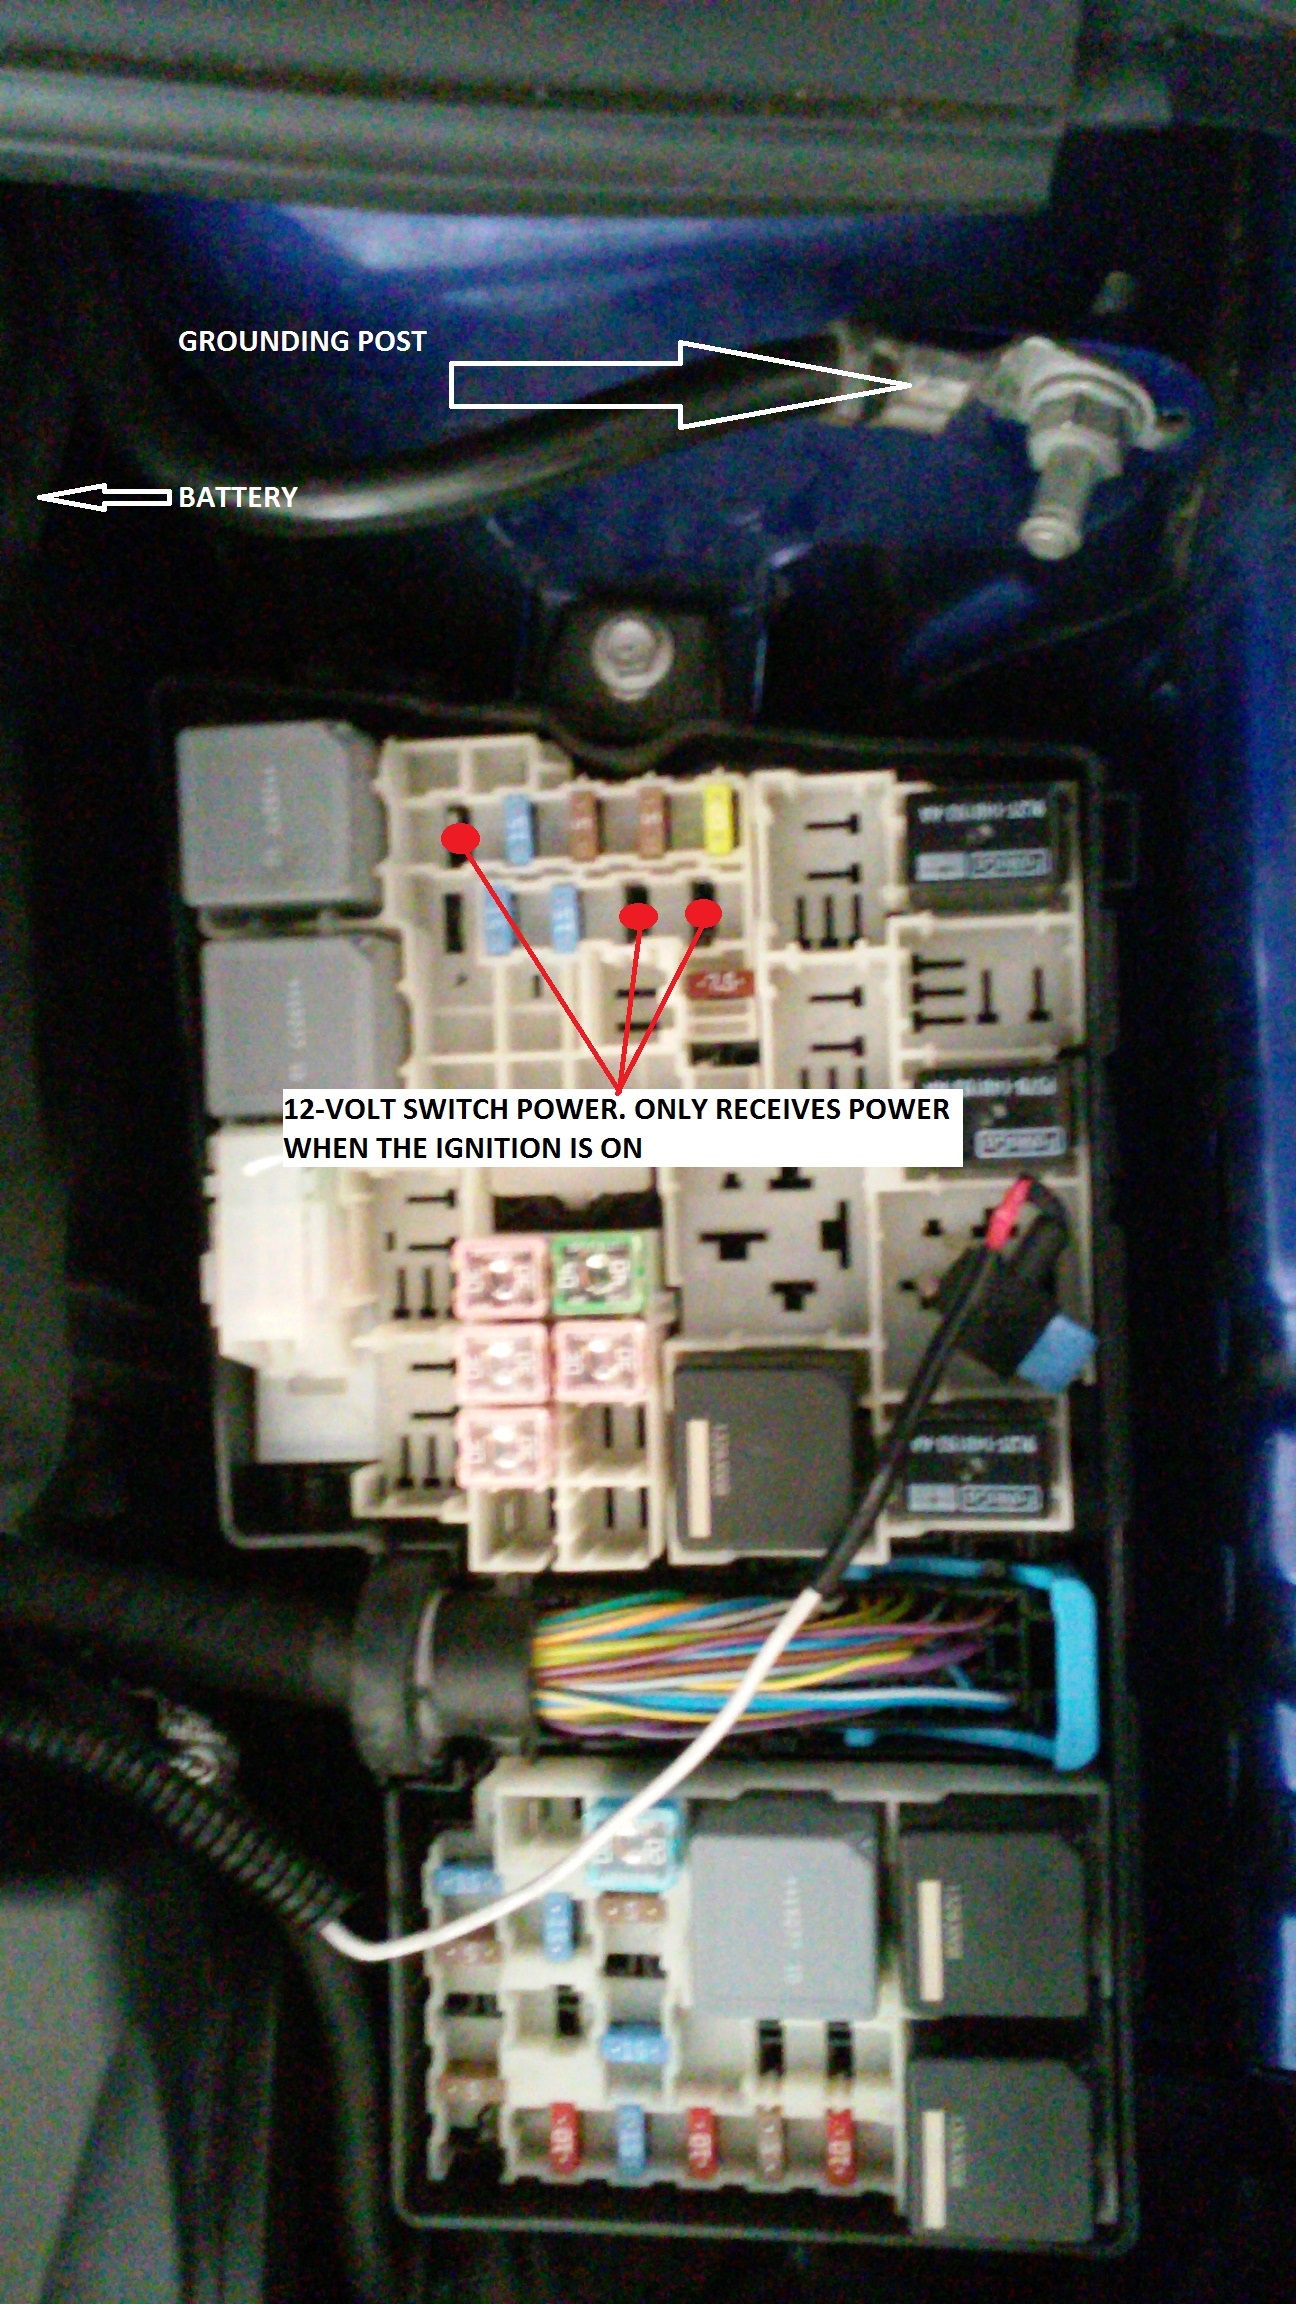 100371d1434292699-help-aem-v2-water-meth-kit-fuse Water In Fuse Box Ford Focus on ford focus blower resistor, ford focus cruise control fuse, ford focus fuse panel chart, 2001 ford fuse box, ford focus obd location, ford focus tail light bulb, ford focus fan belt, ford bronco fuse box, ford focus ac fuse, ford focus body diagram, ford focus alternator belt, ford focus flasher location, ford fuse box diagram, ford focus alternator fuse, ford focus ac relay, ford explorer fuse box, ford focus brake light fuse, ford focus condenser, ford maverick fuse box, ford focus pedal assembly,